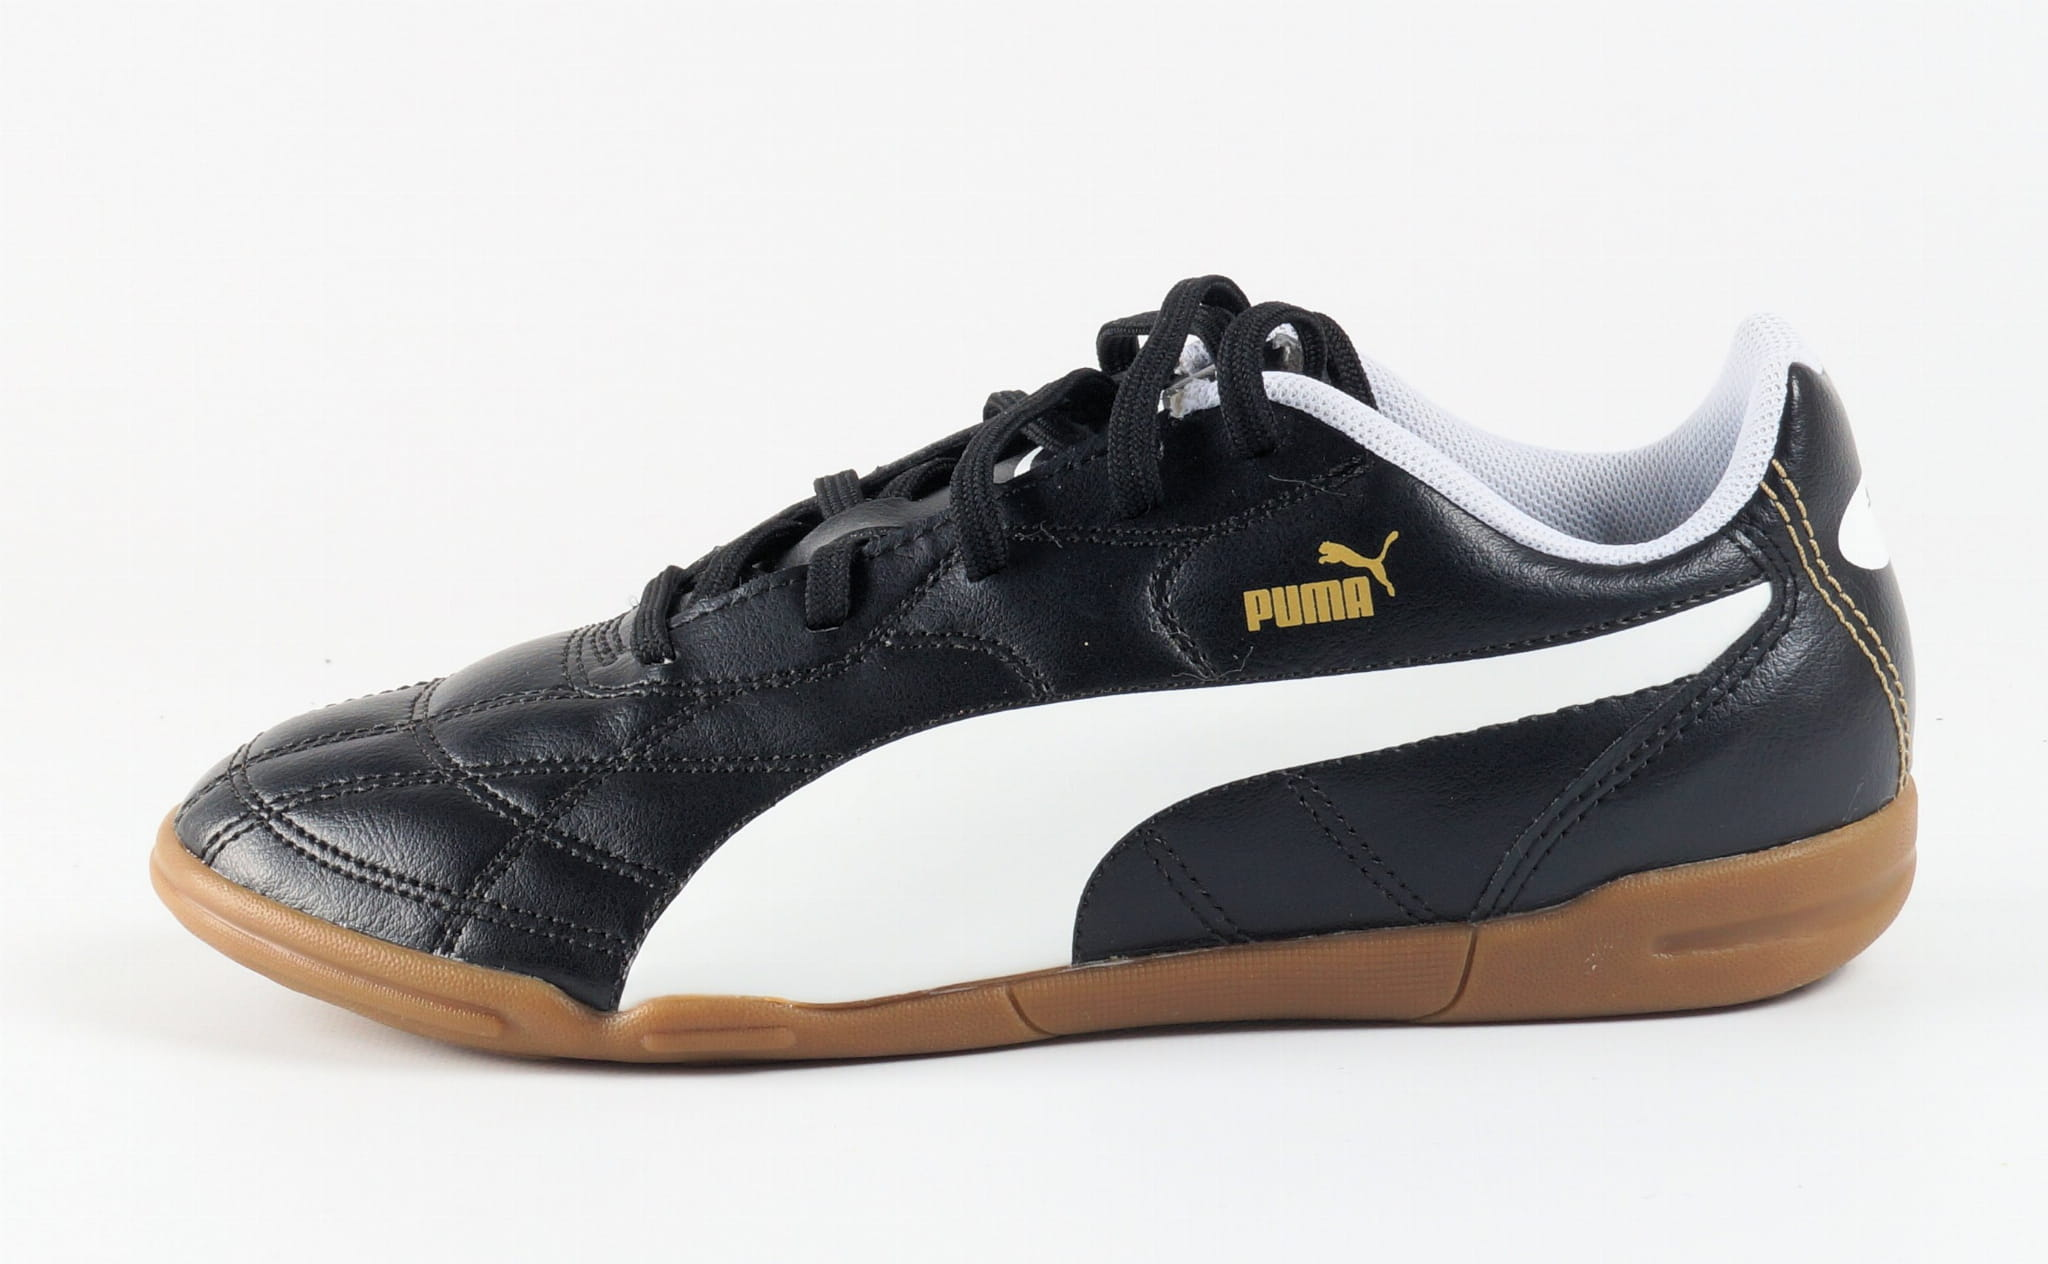 PUMA OBUWIE j. 103346 01 CLASSICO IT JR